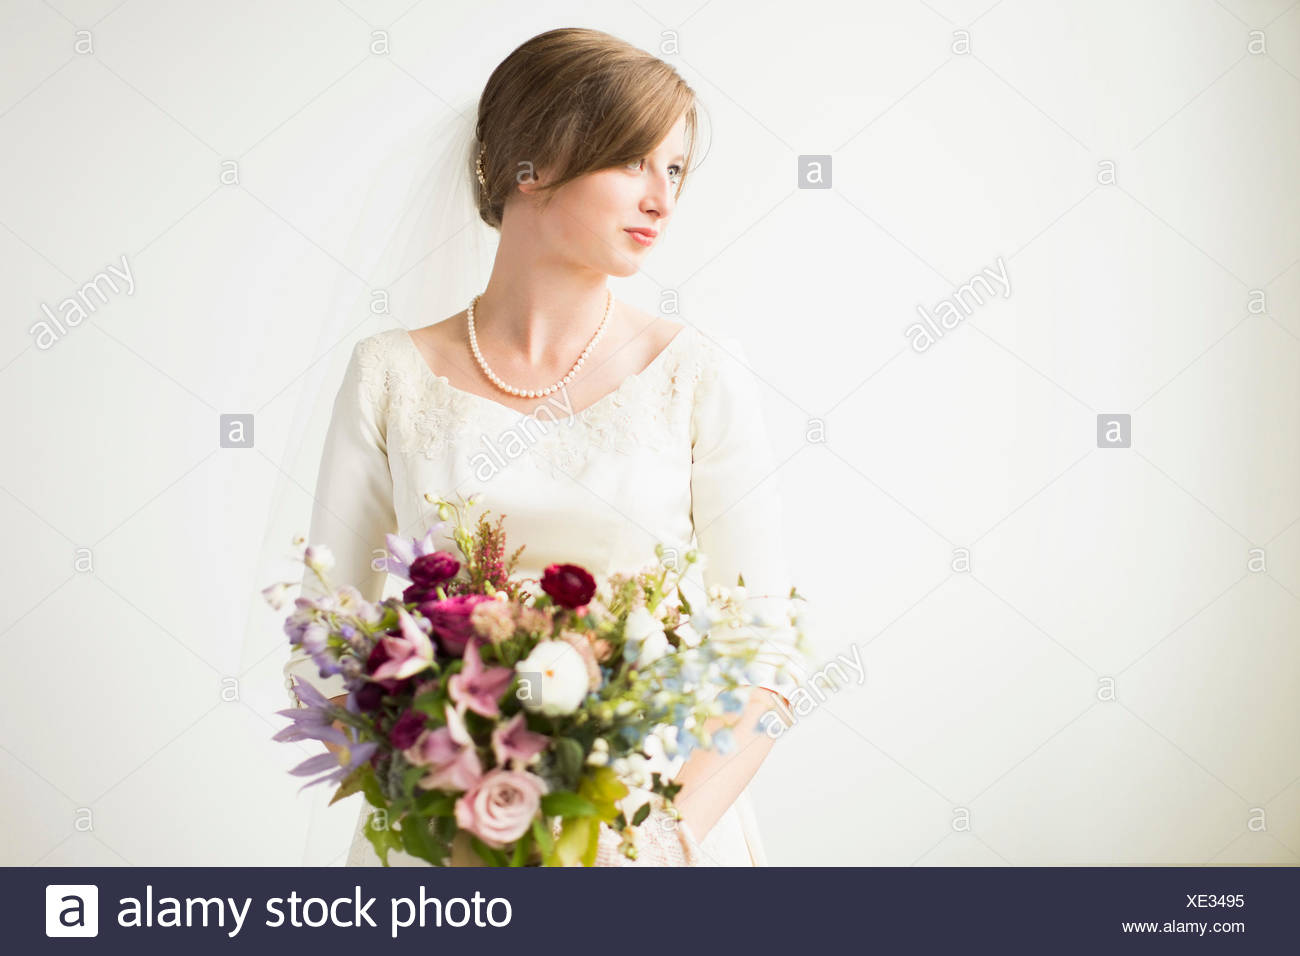 Portrait of bride with wedding bouquet - Stock Image